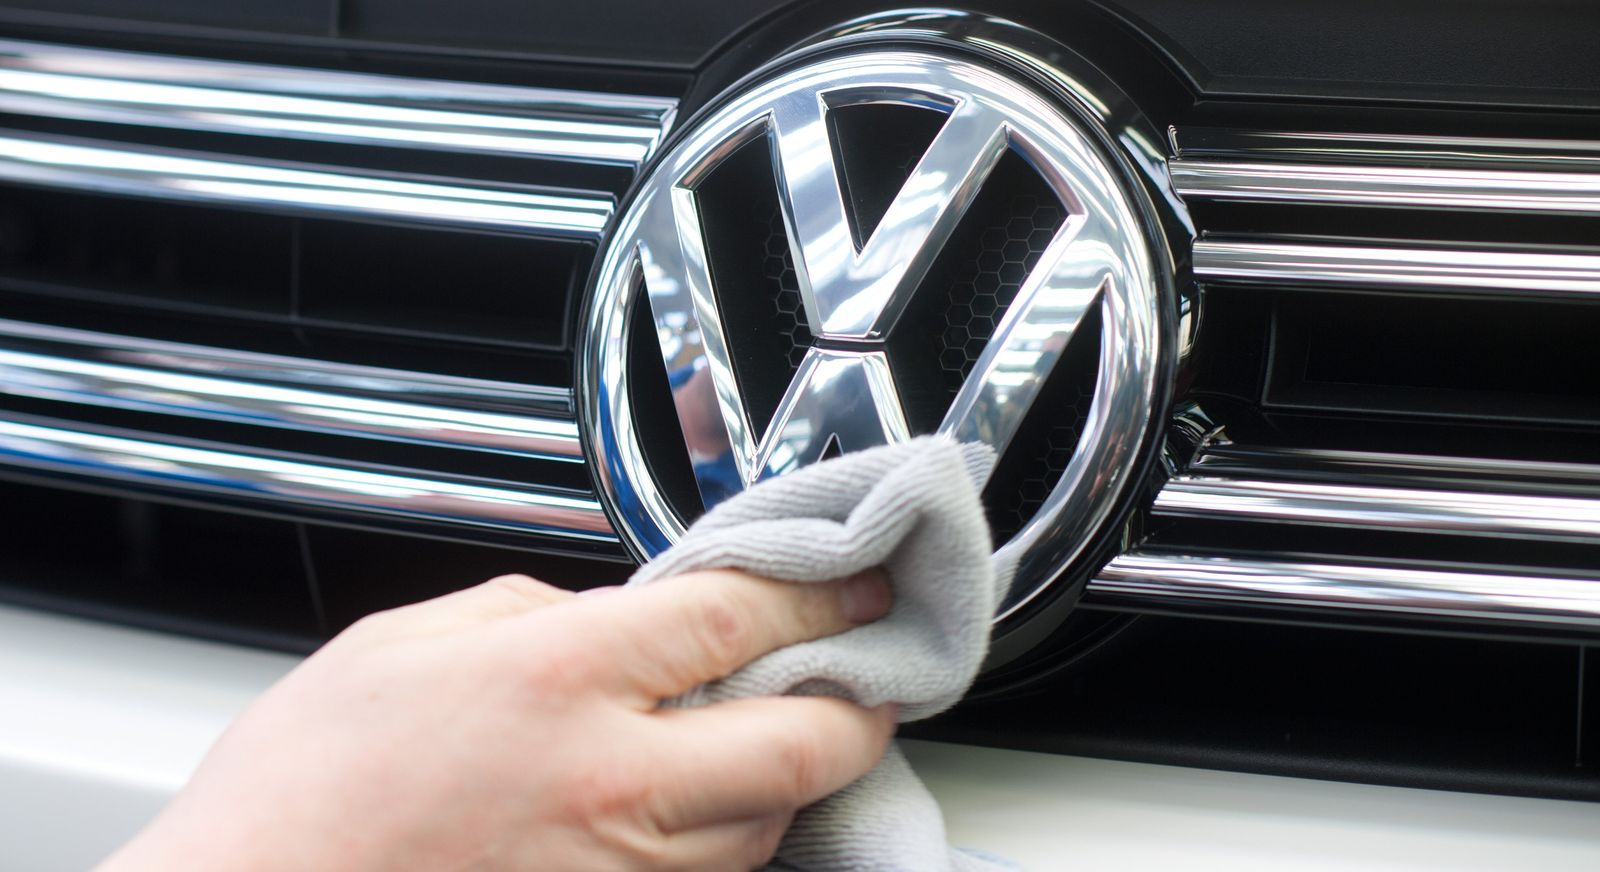 Volkswagen erwartet Wachstum in China